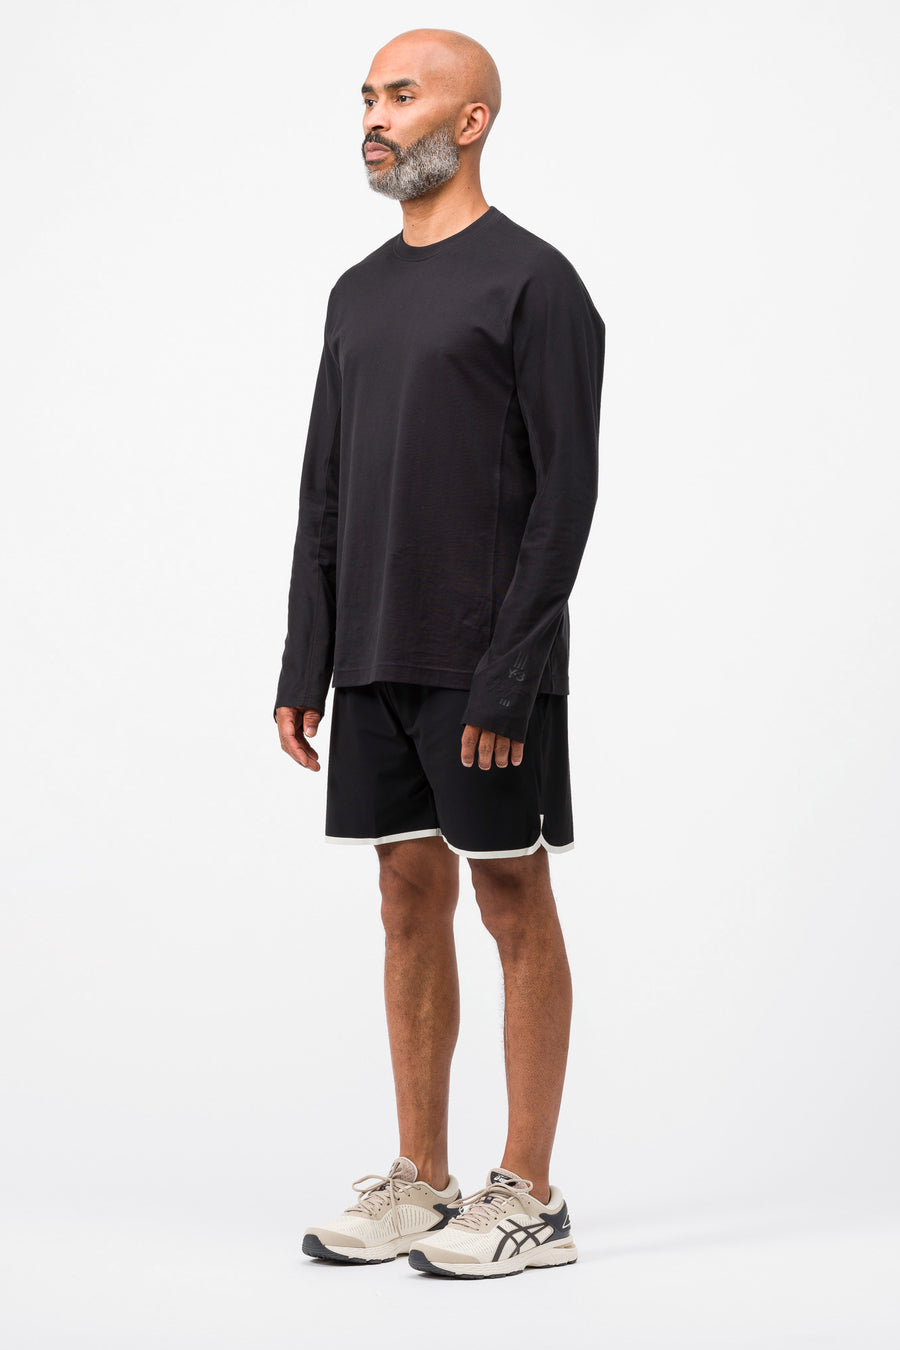 ASICS Reigning Champ 7 Inch Run Short in Performance Black - Notre